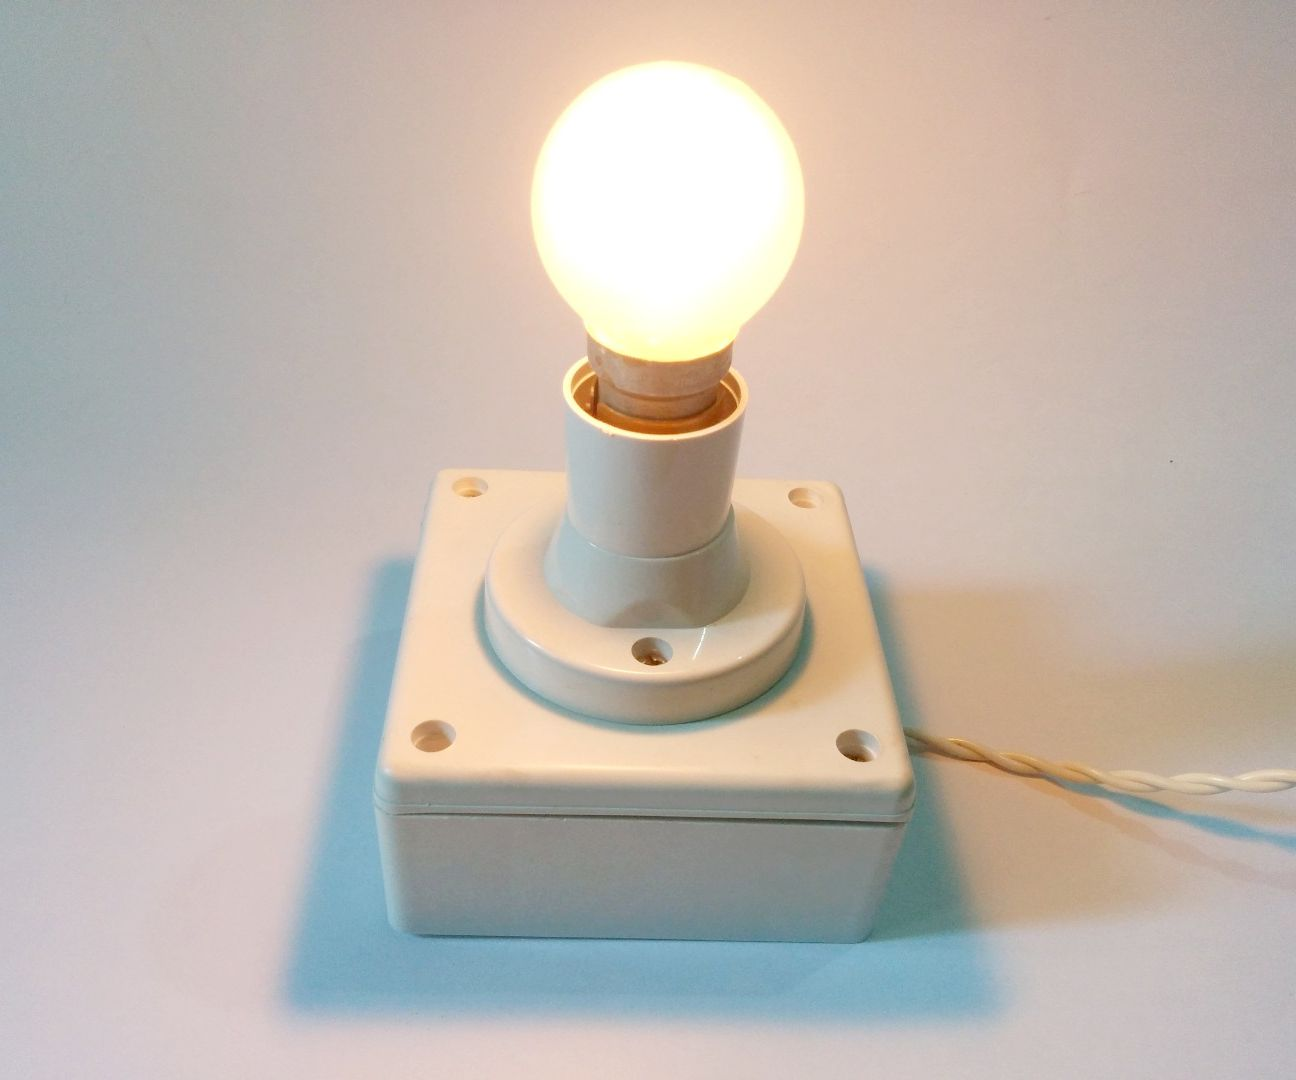 Taking Basic Electronics to the Internet (IoT) | Home Lights